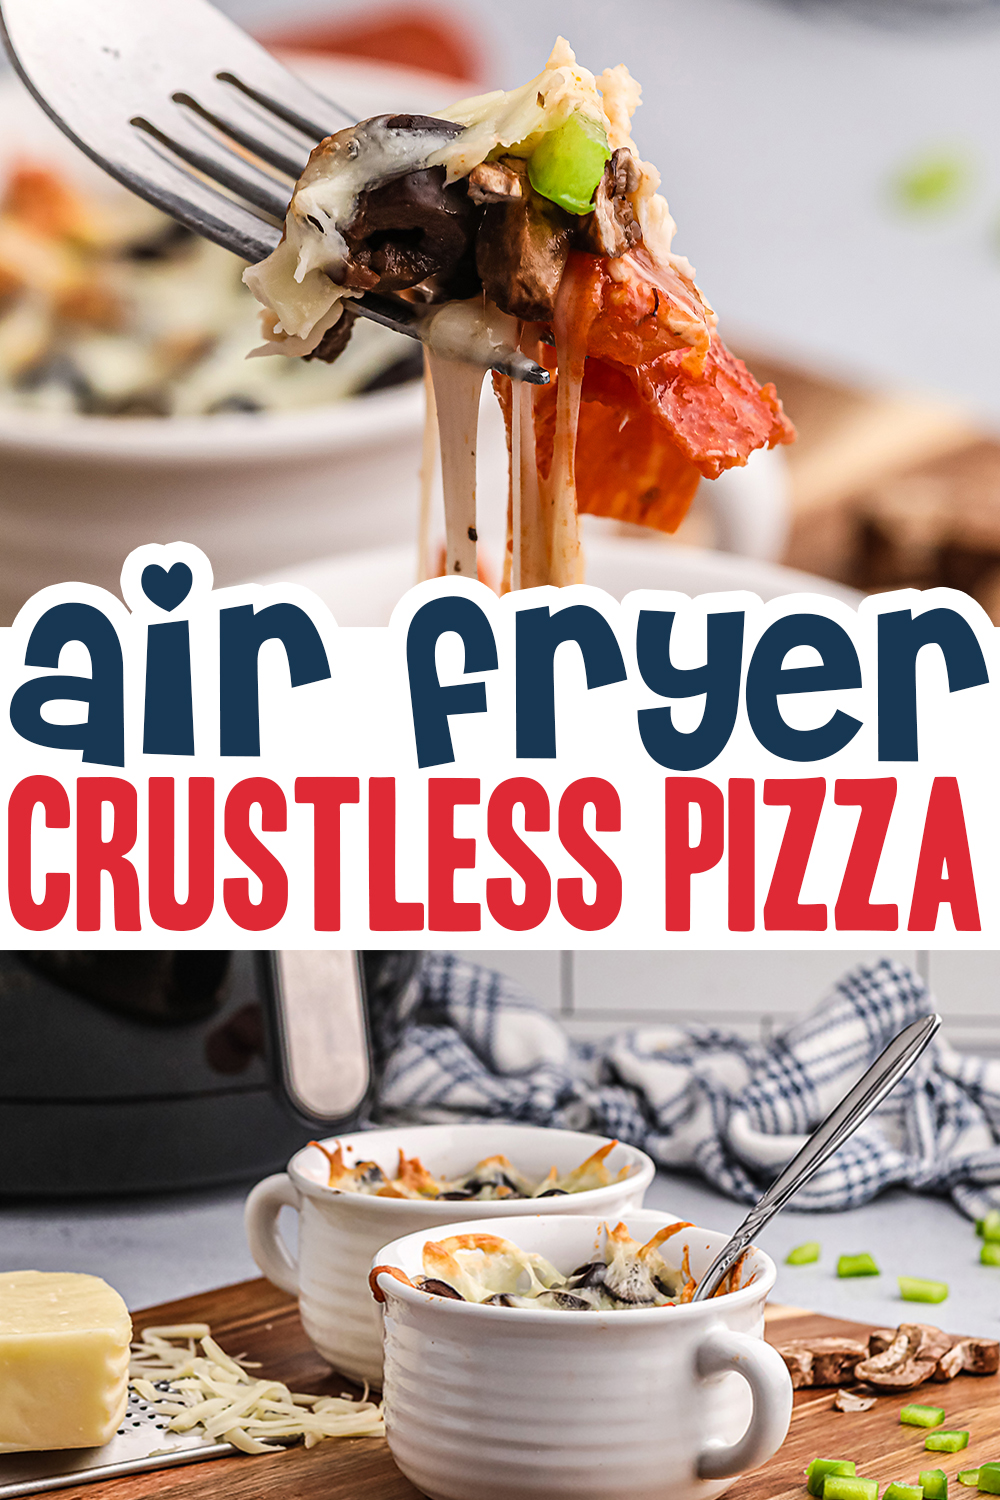 We are loving this keto friendly crustless pizza to feed us our favorite pizza toppings!